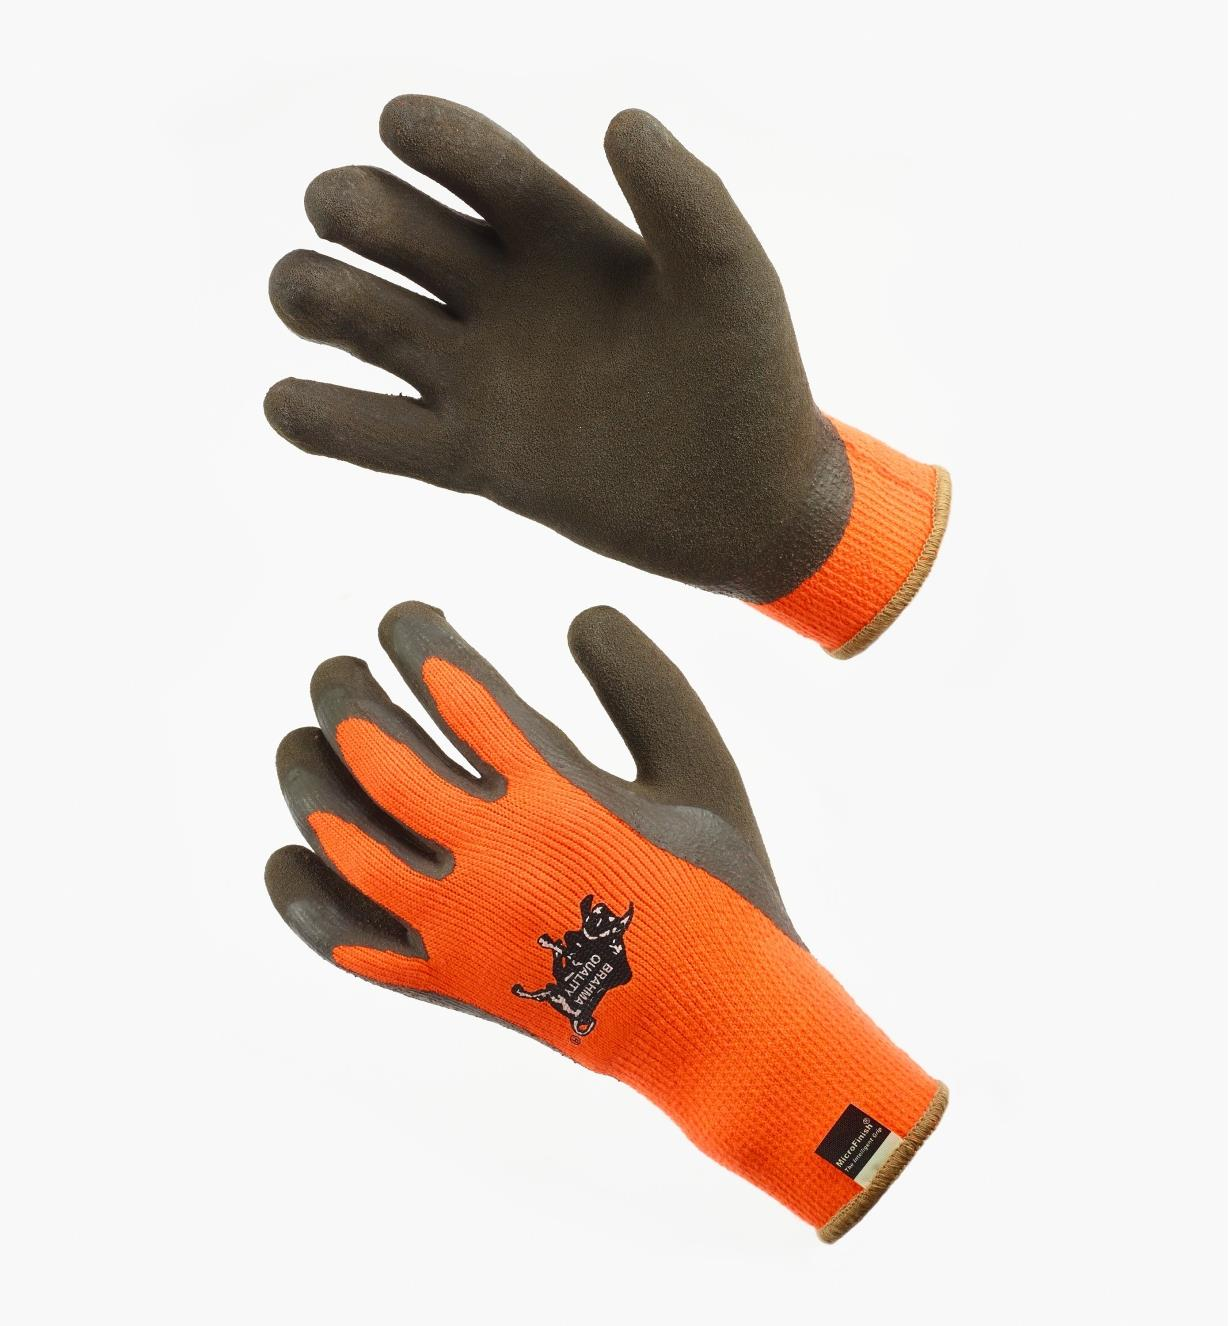 AH204 - Thermal Gripper Gloves, XL (size 10)